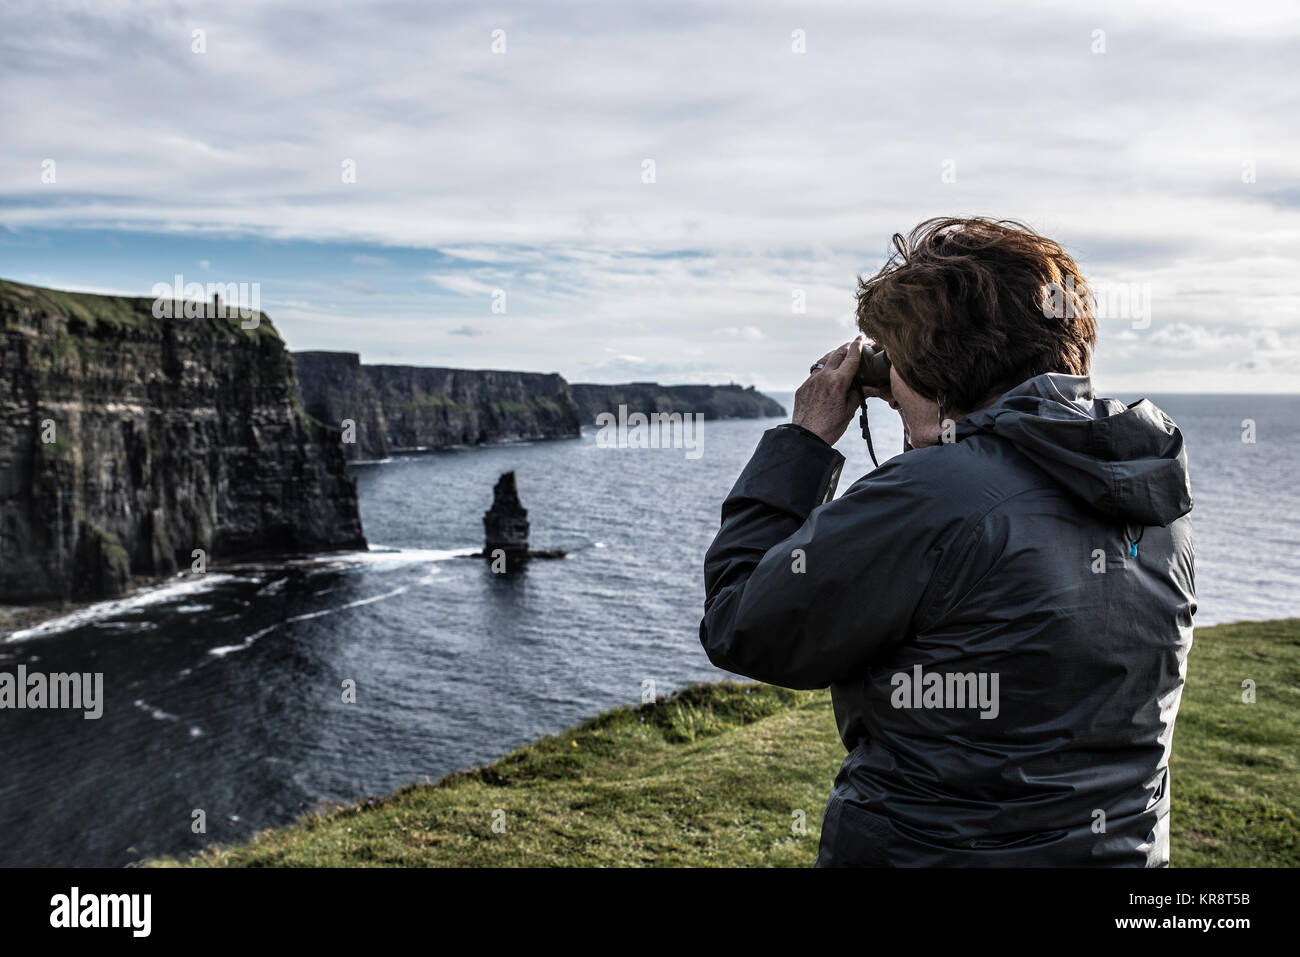 Ireland, Clare County, Woman looking through binoculars on Cliffs of Moher - Stock Image